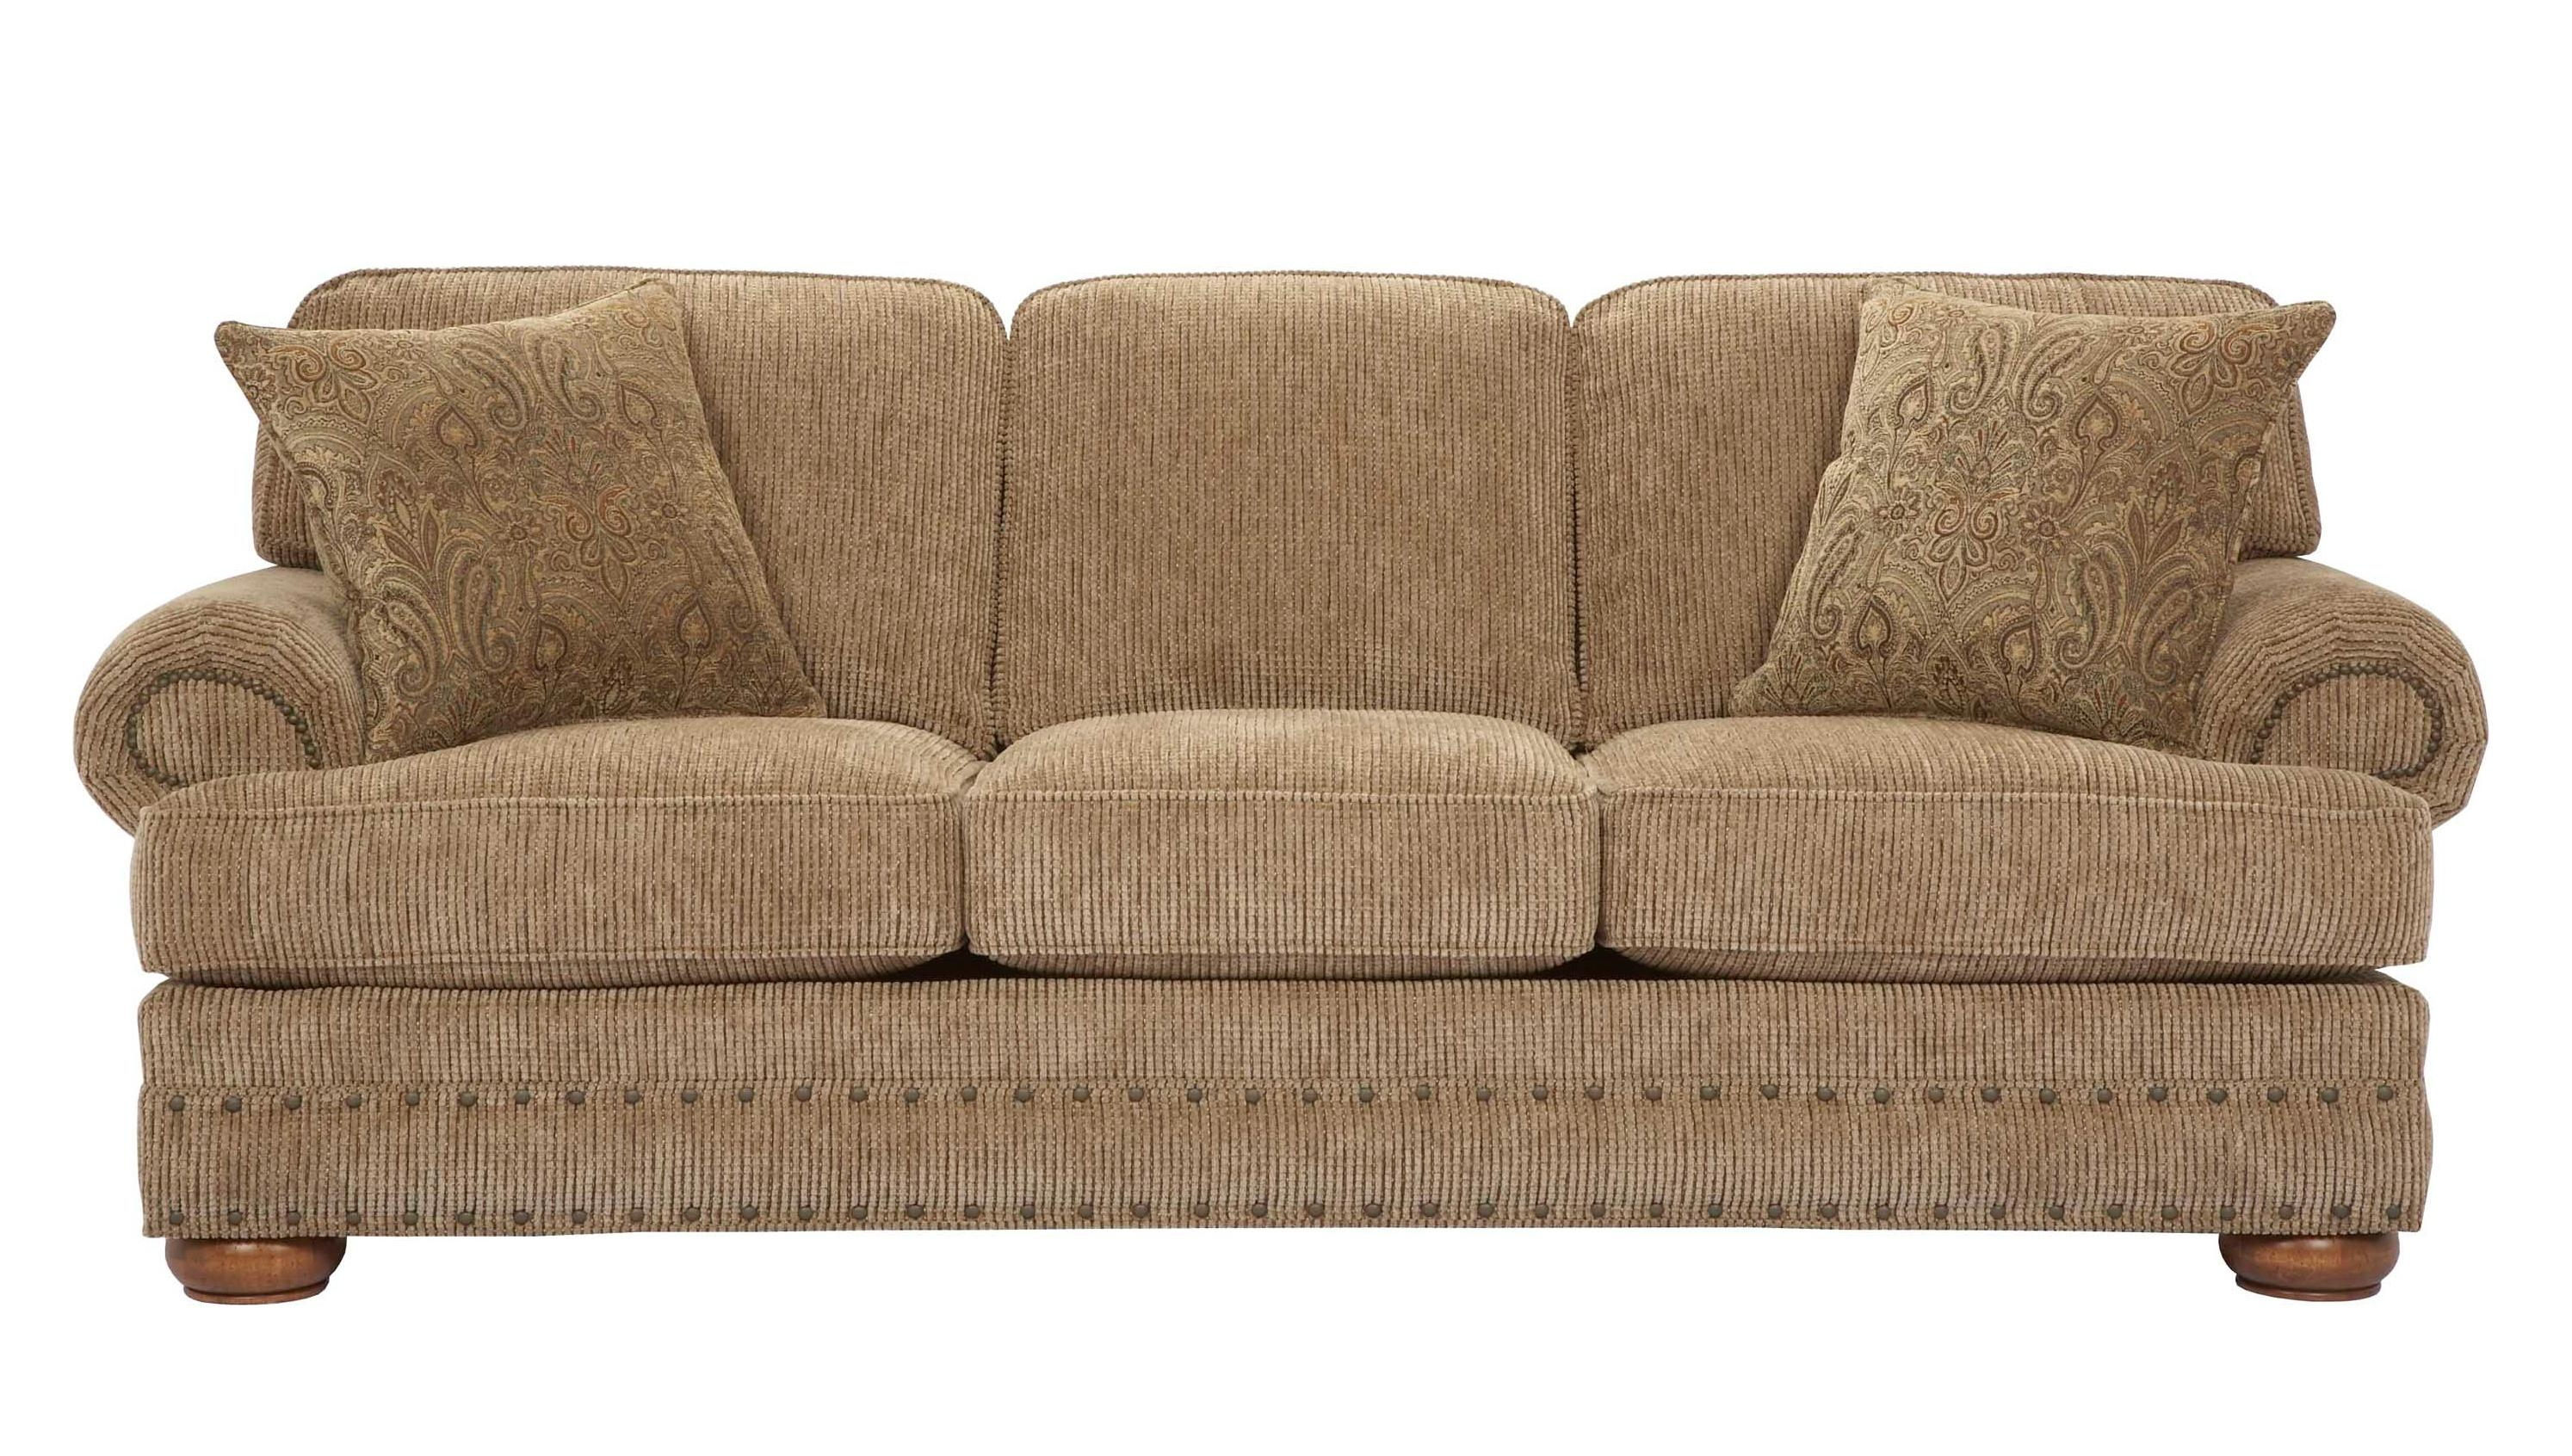 Broyhill Sofa 4178 3 Treatment Recliners Covers Fabric Samples Throughout Broyhill Harrison Sofas (Image 12 of 20)